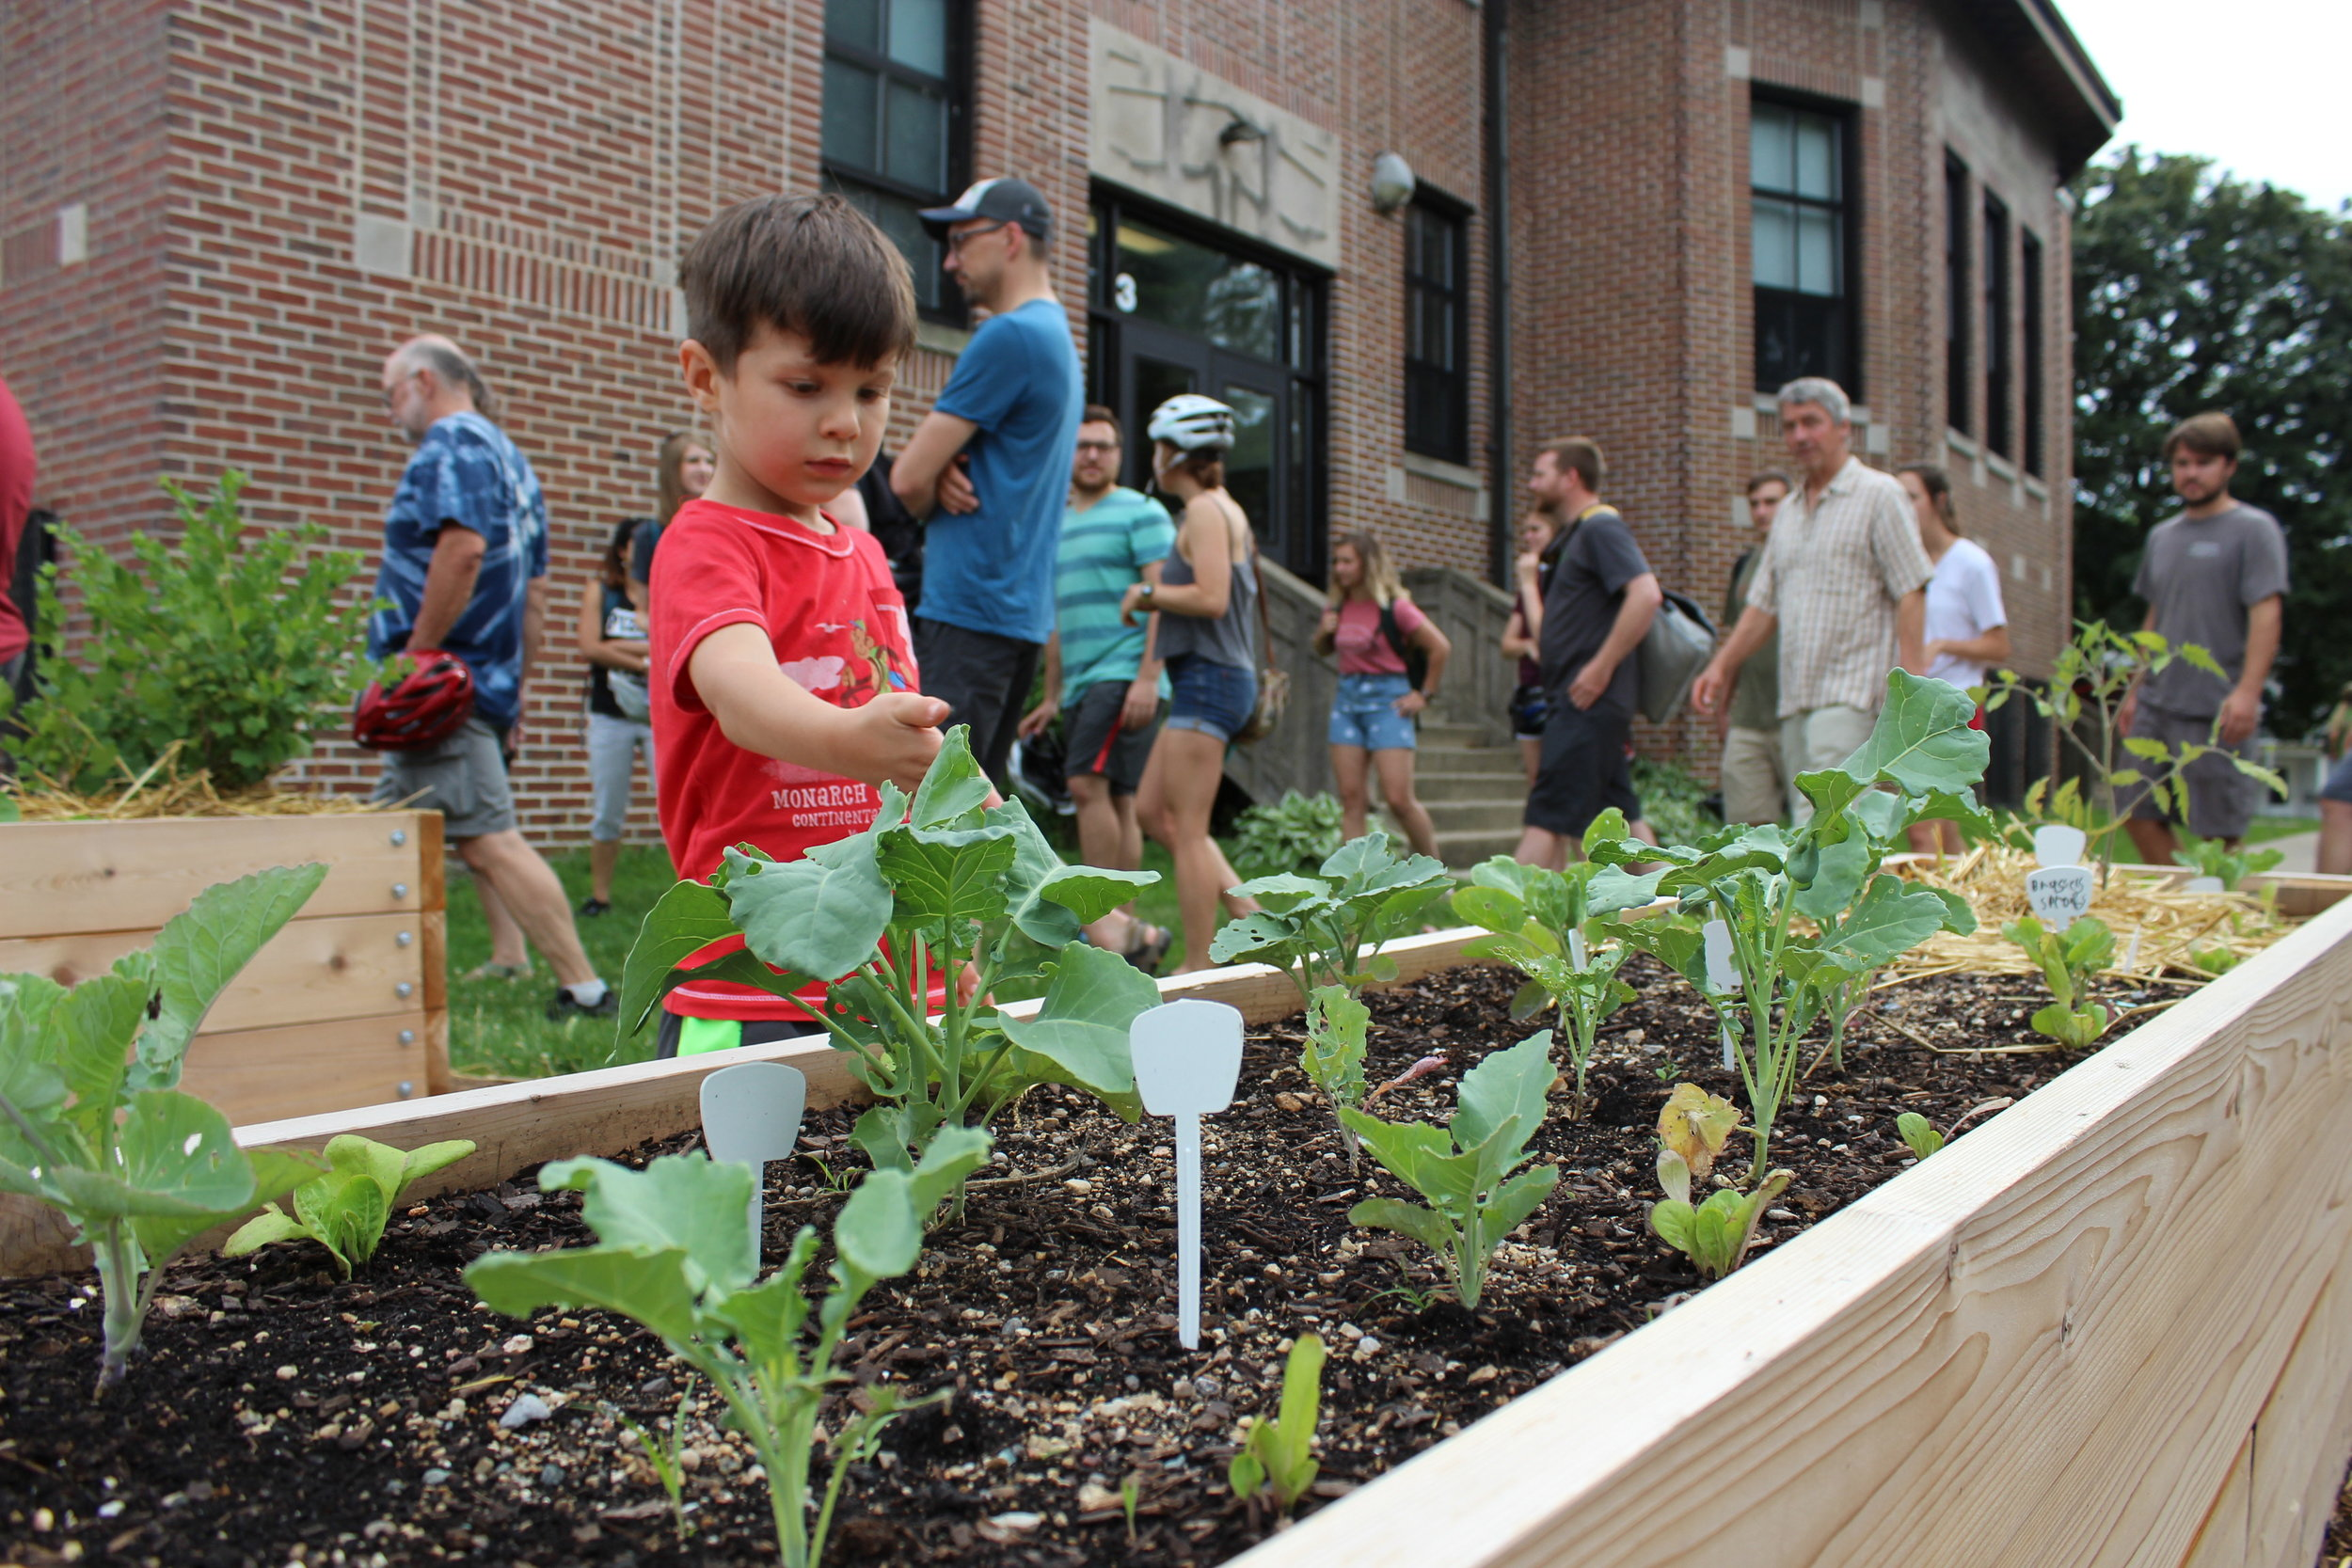 Lowell Elementary's raised bed gardens